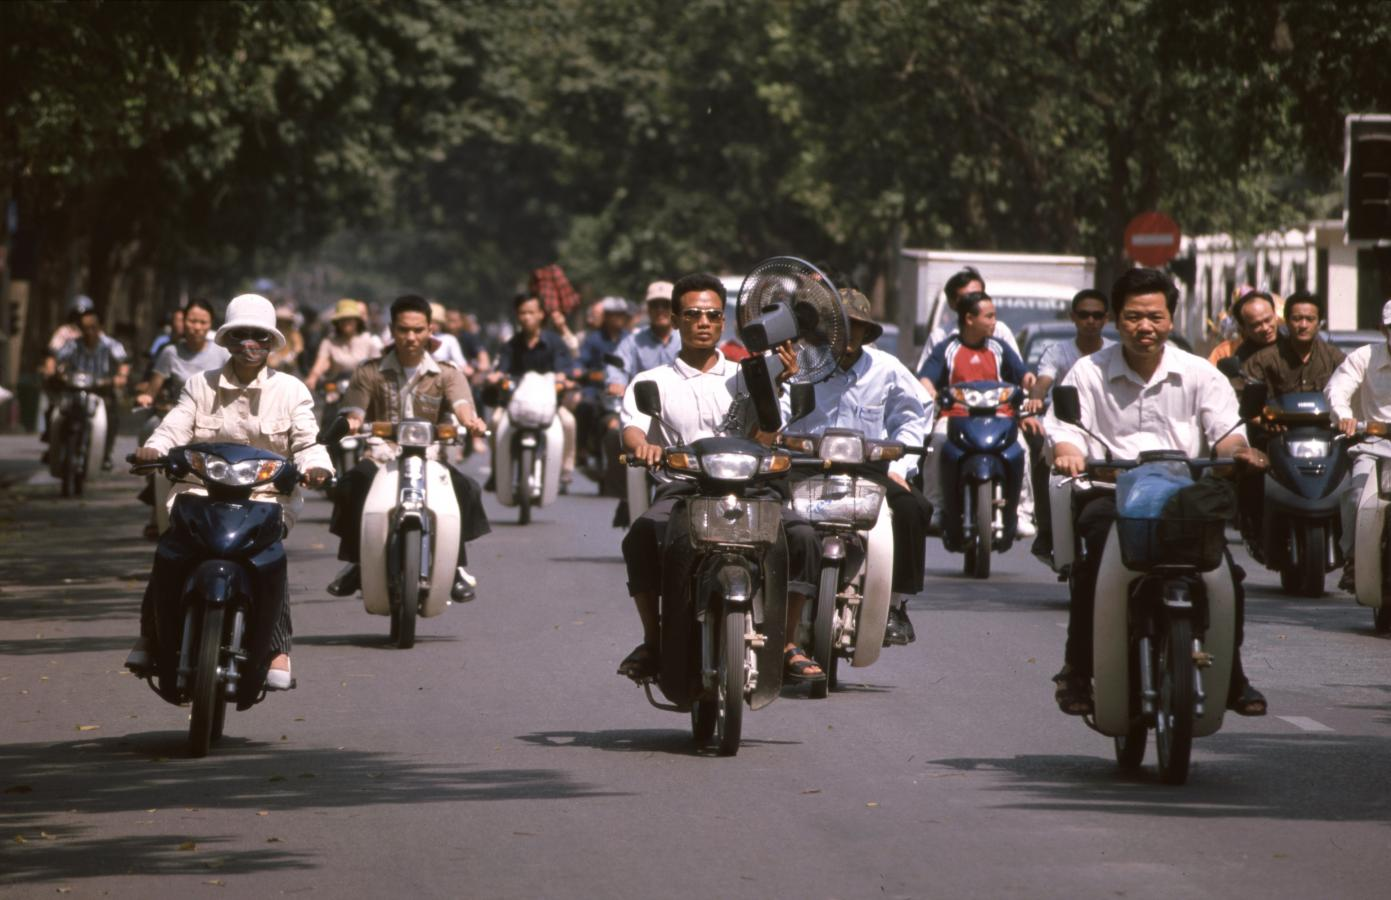 traffic-in-ho-chi-minh-city-(saigon)